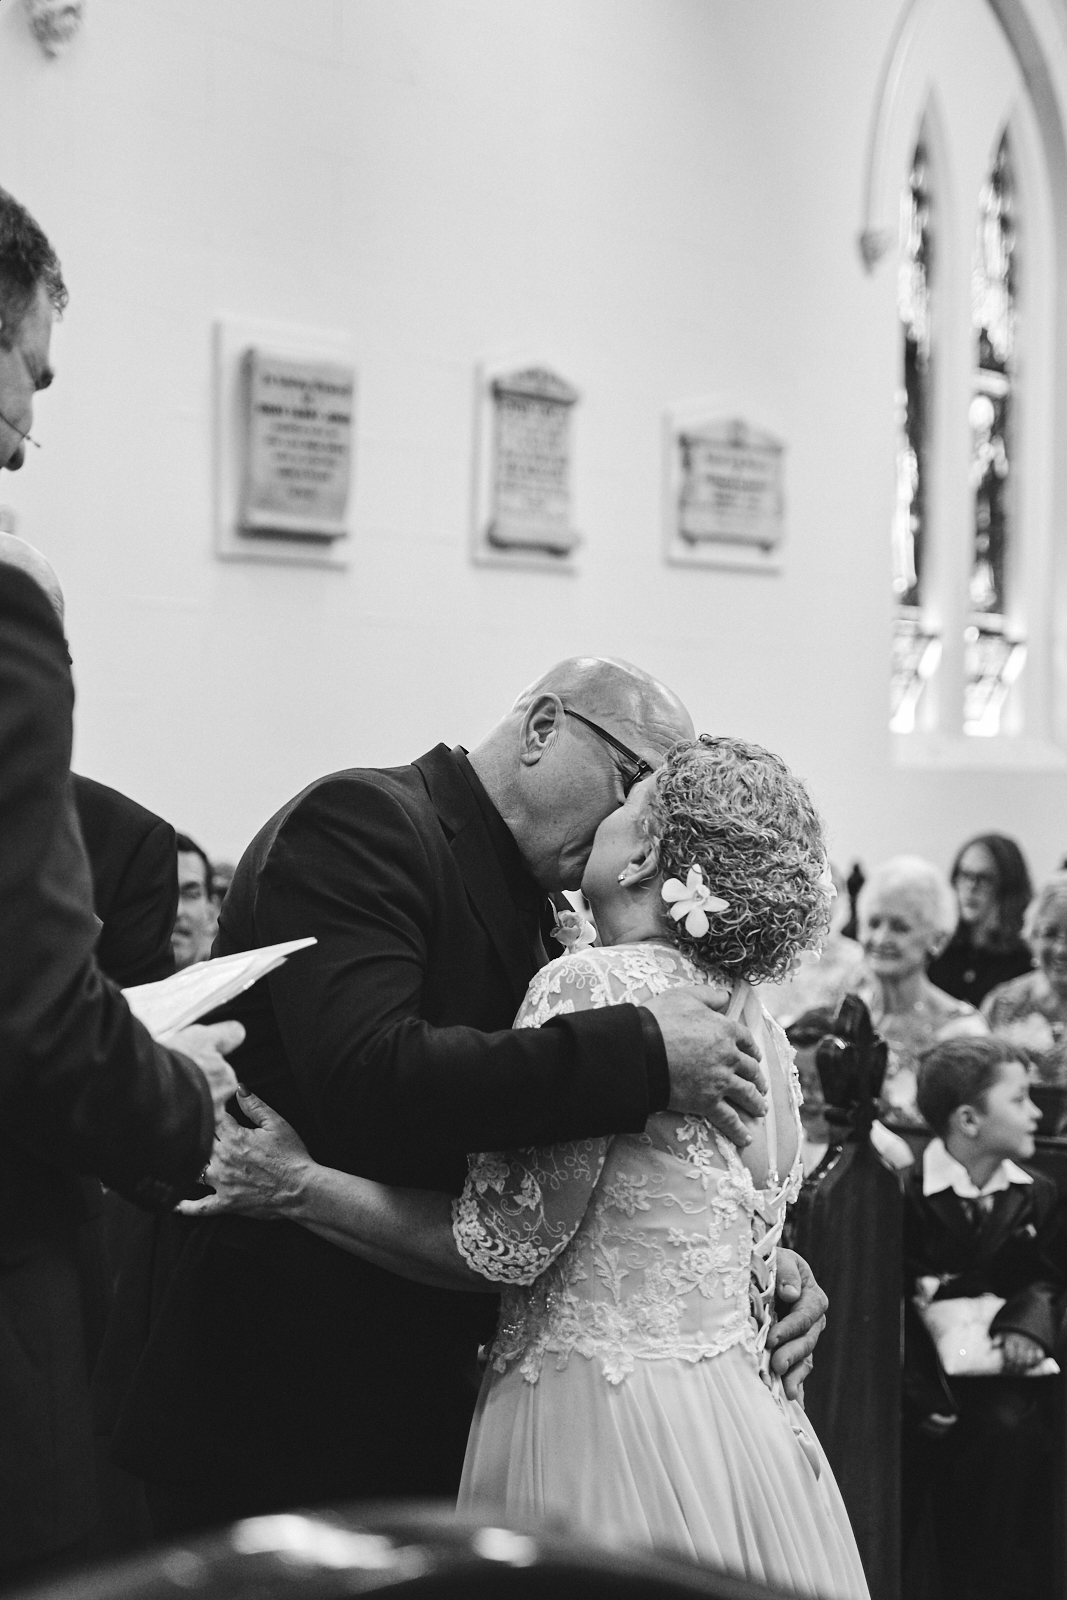 penrith-wedding-photography_179.jpg